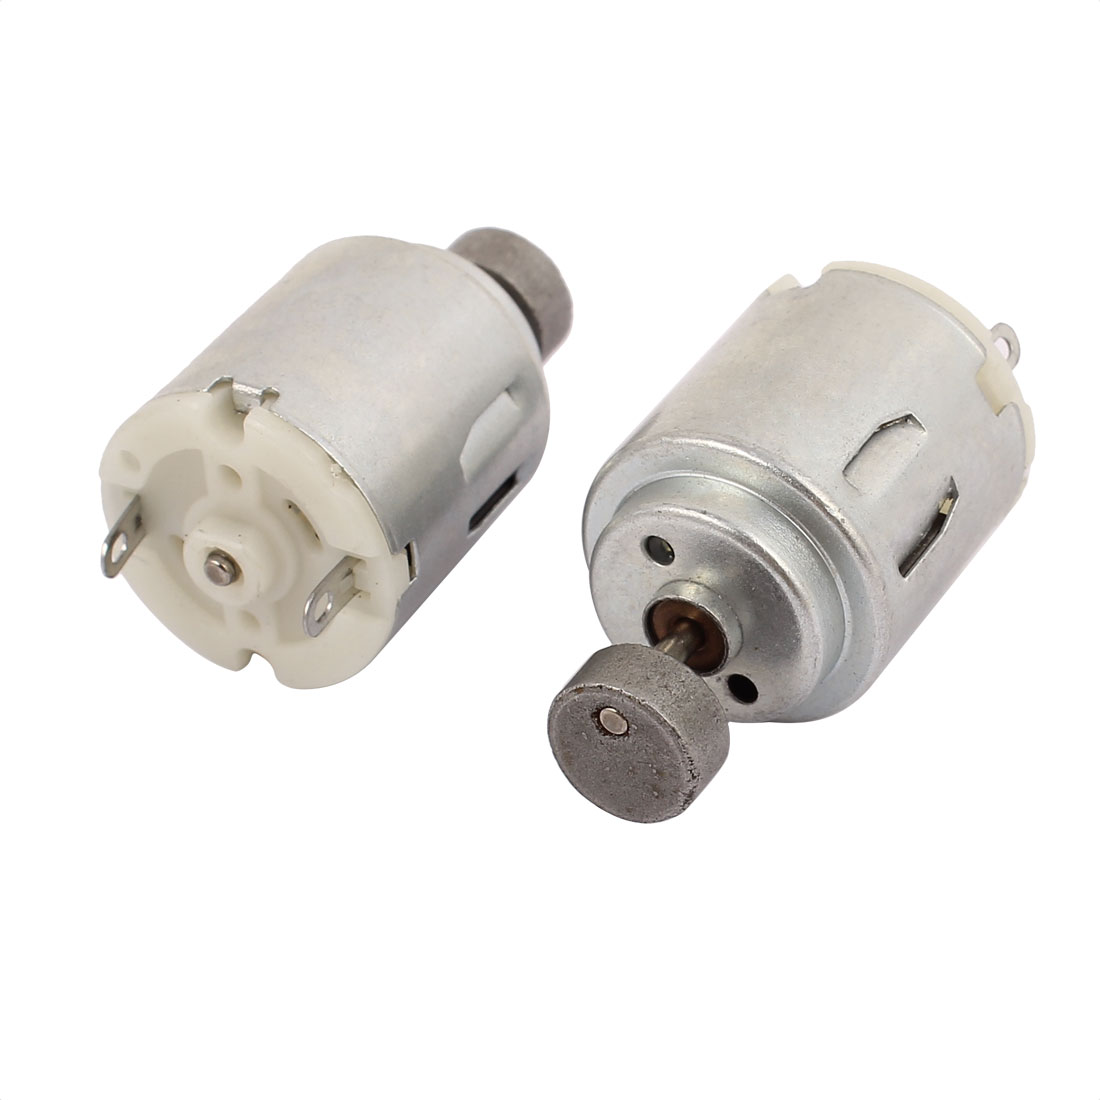 2Pcs DC 3-4.5V 18000RPM Large Torque Vibration Micro DC Electric Motor for Electric Toy